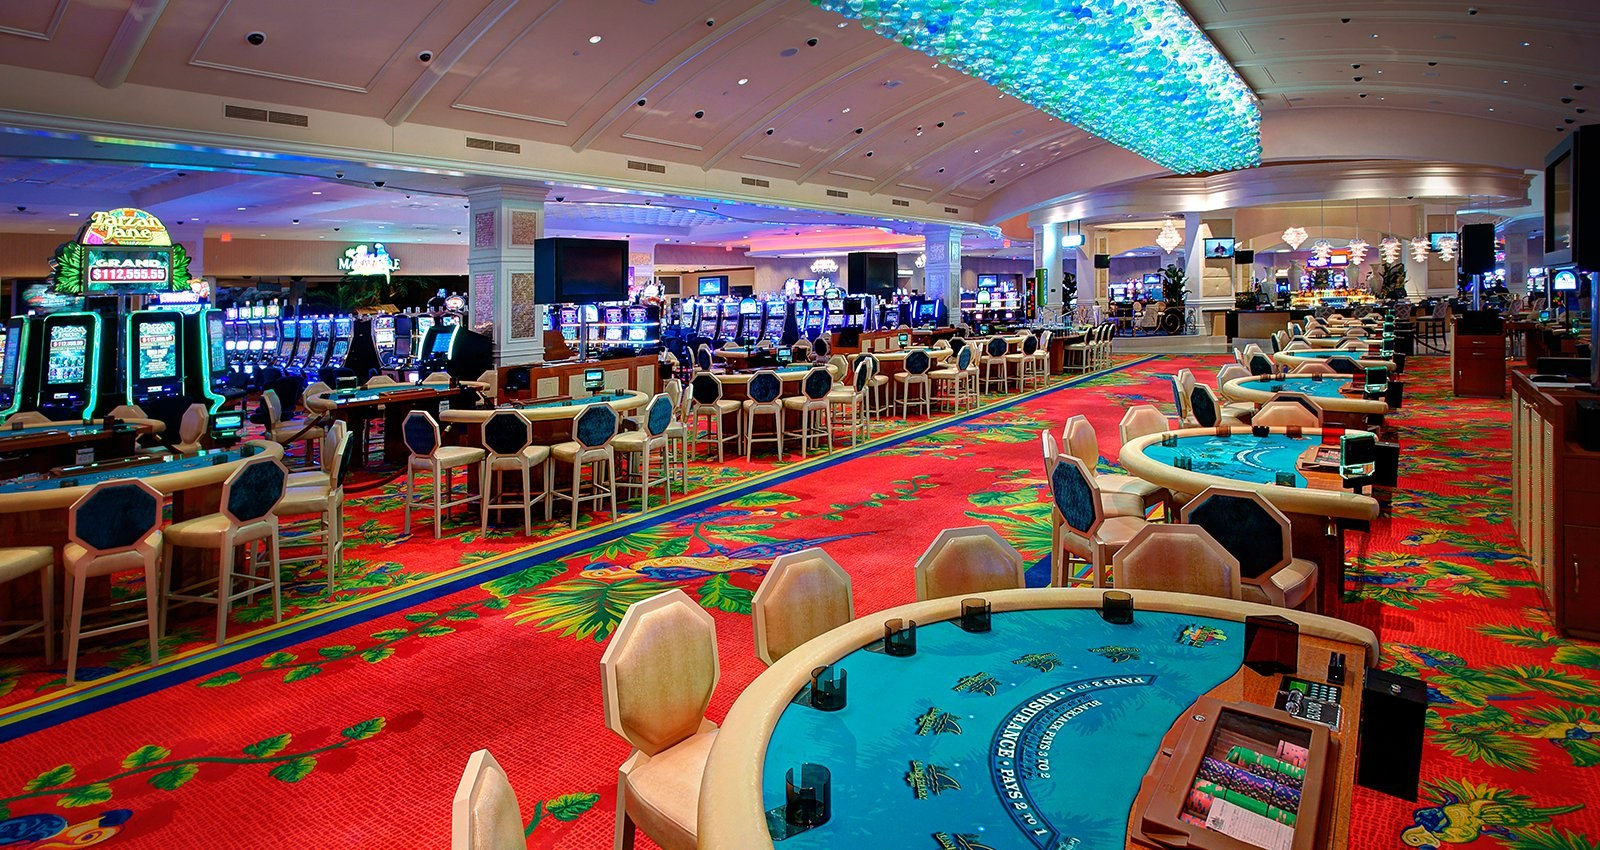 Bossier gambling lodging near harrahs casino in north carolina